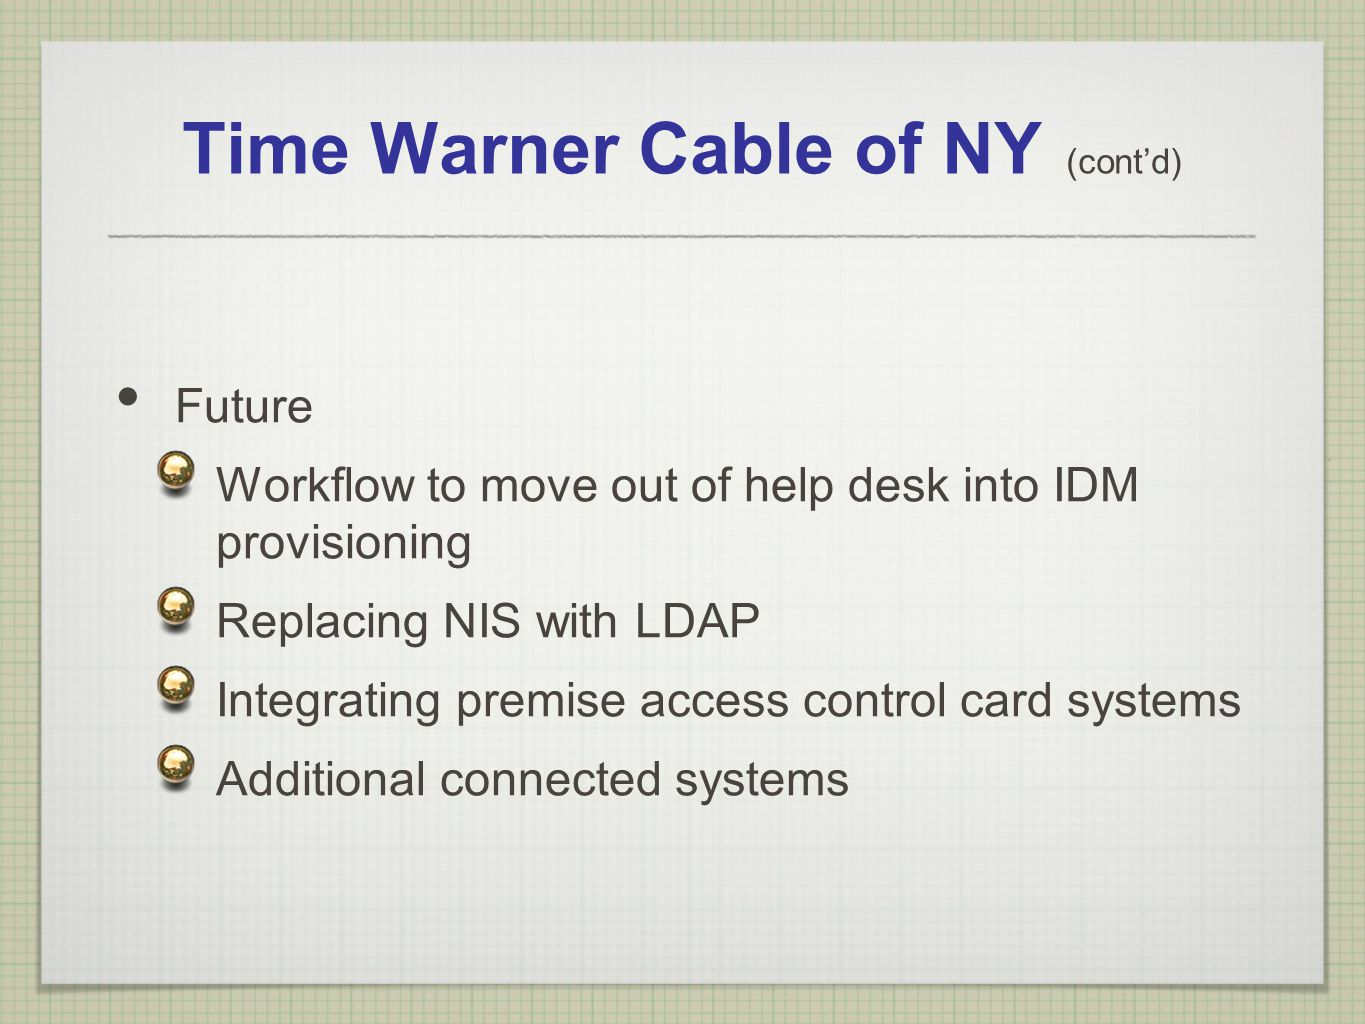 Time Warner Cable of NY (contd) Future Workflow to move out of help desk into IDM provisioning Replacing NIS with LDAP Integrating premise access cont